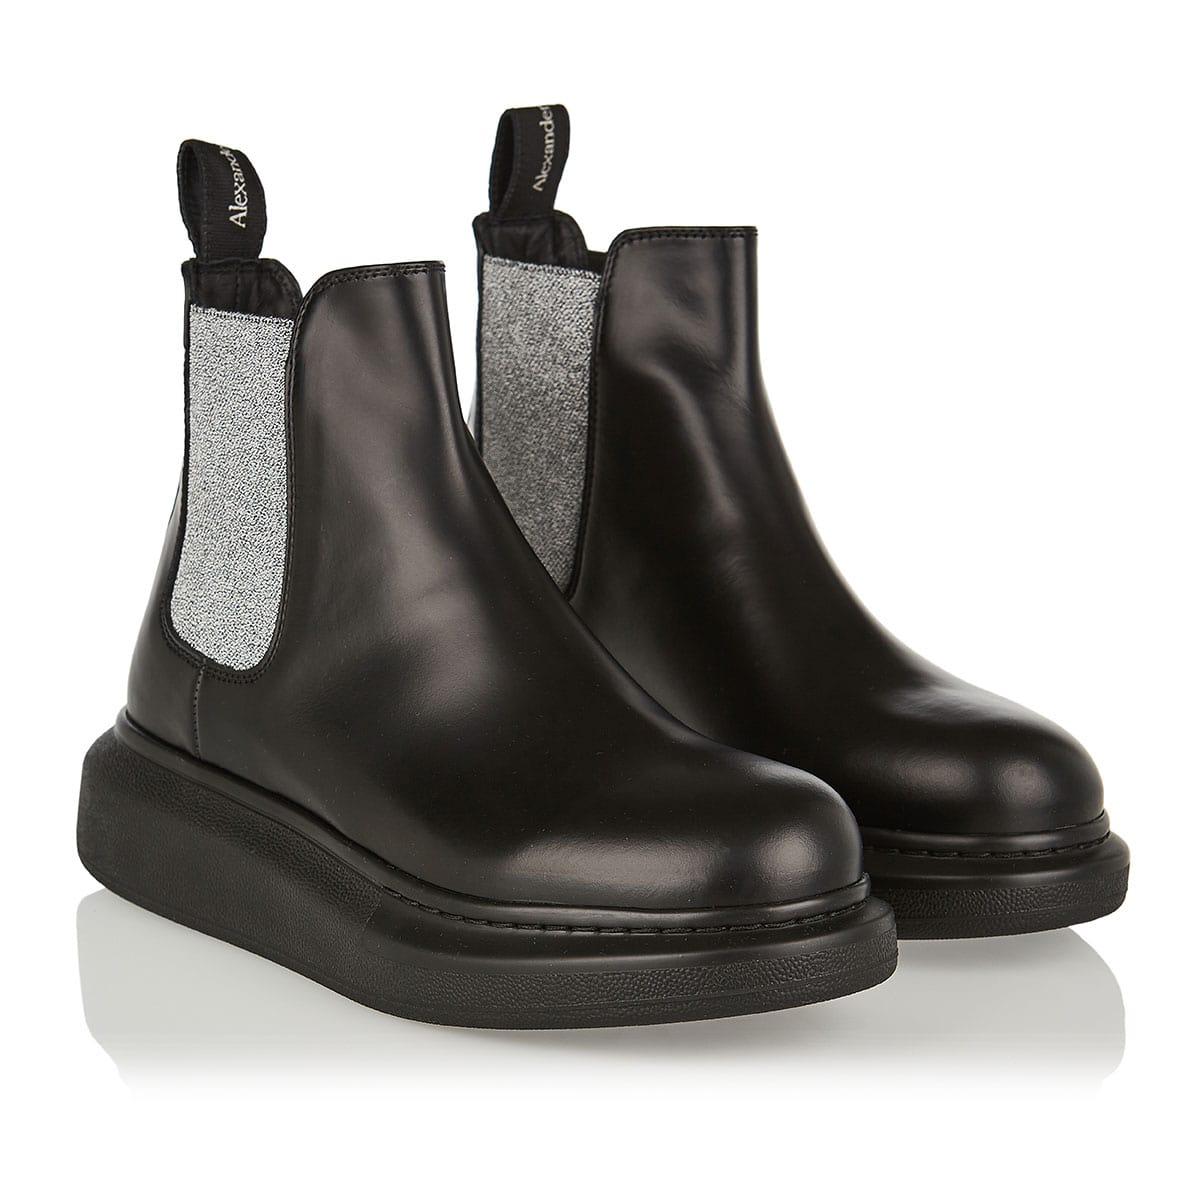 Lurex and leather Chelsea boots